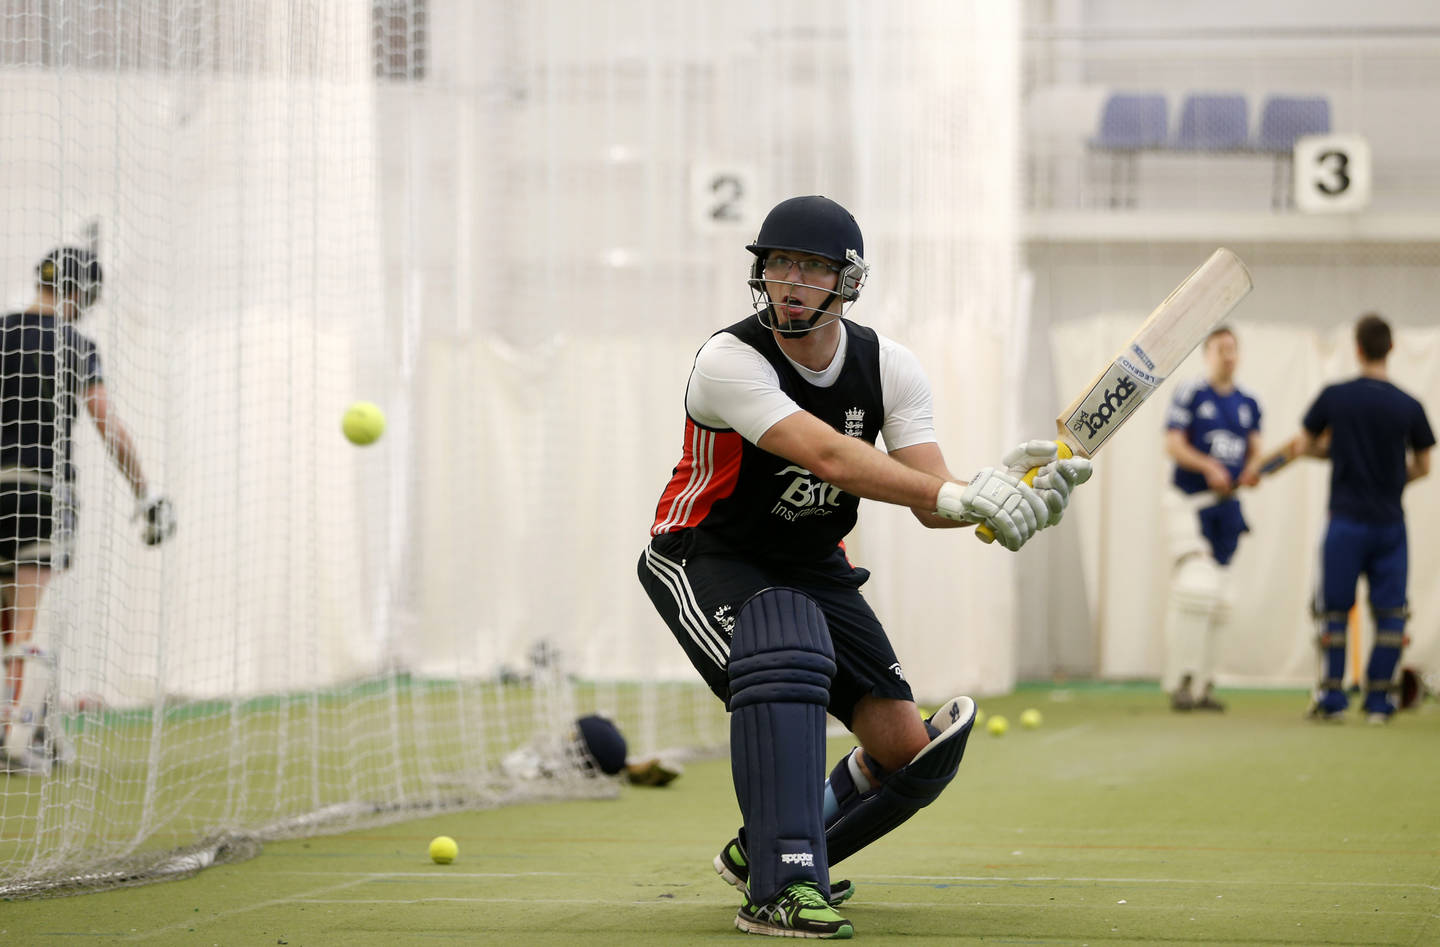 Disabled player in cricket training